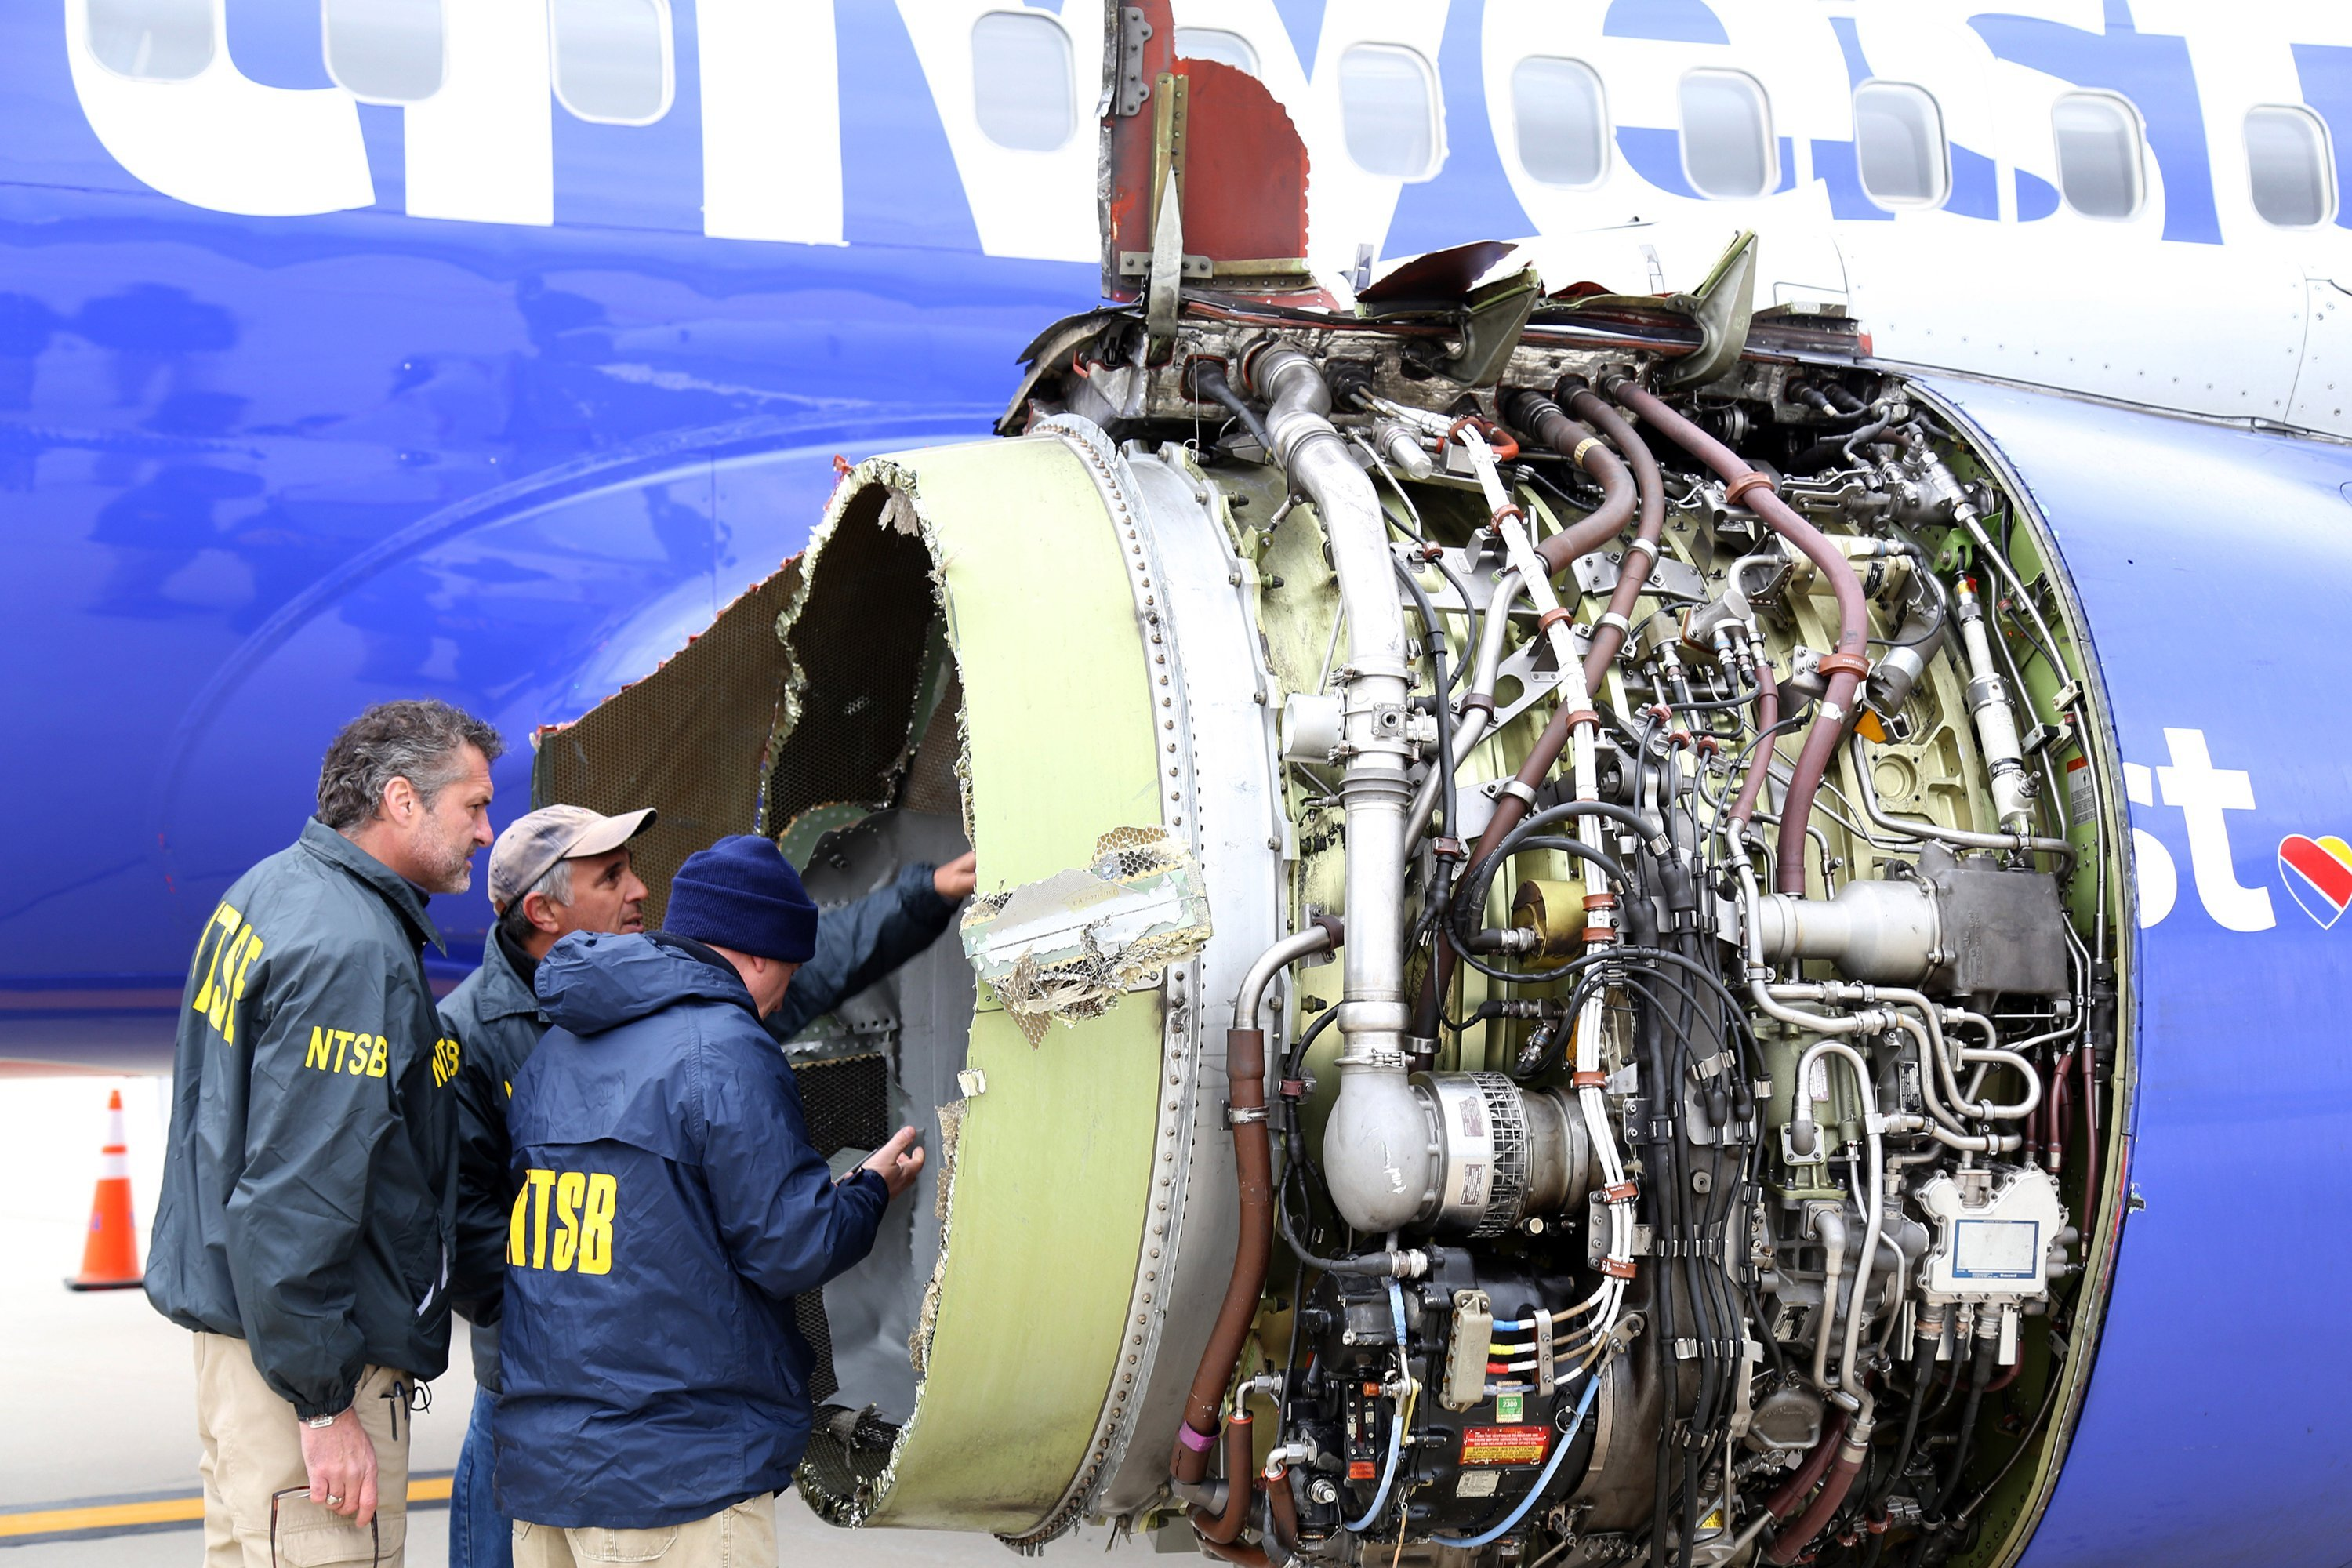 Boeing may need to redesign 7,000 jets after a fatal accident last year